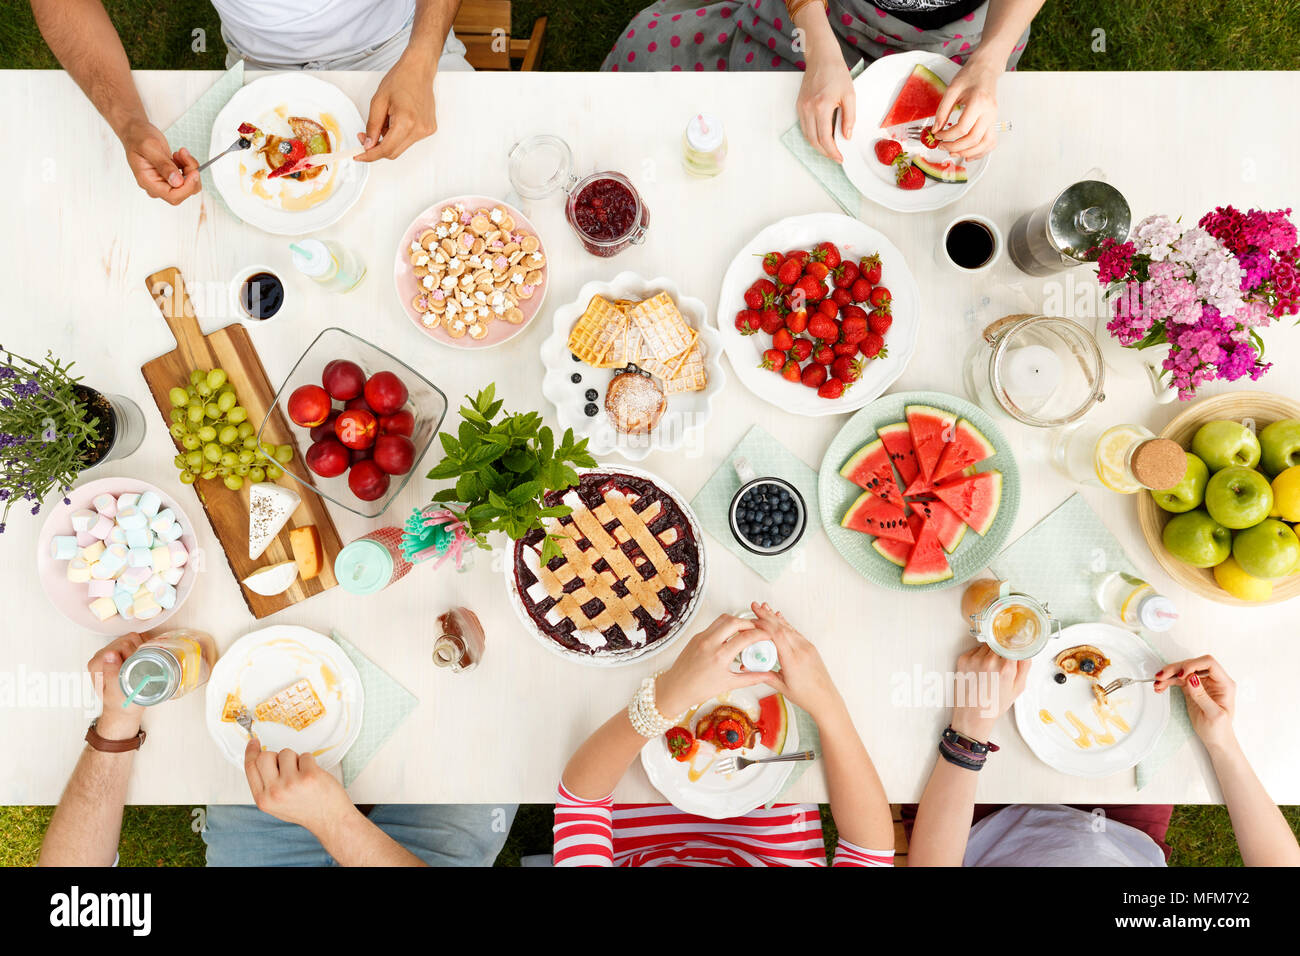 Group of mixed-race friends eating and drinking outside - Stock Image